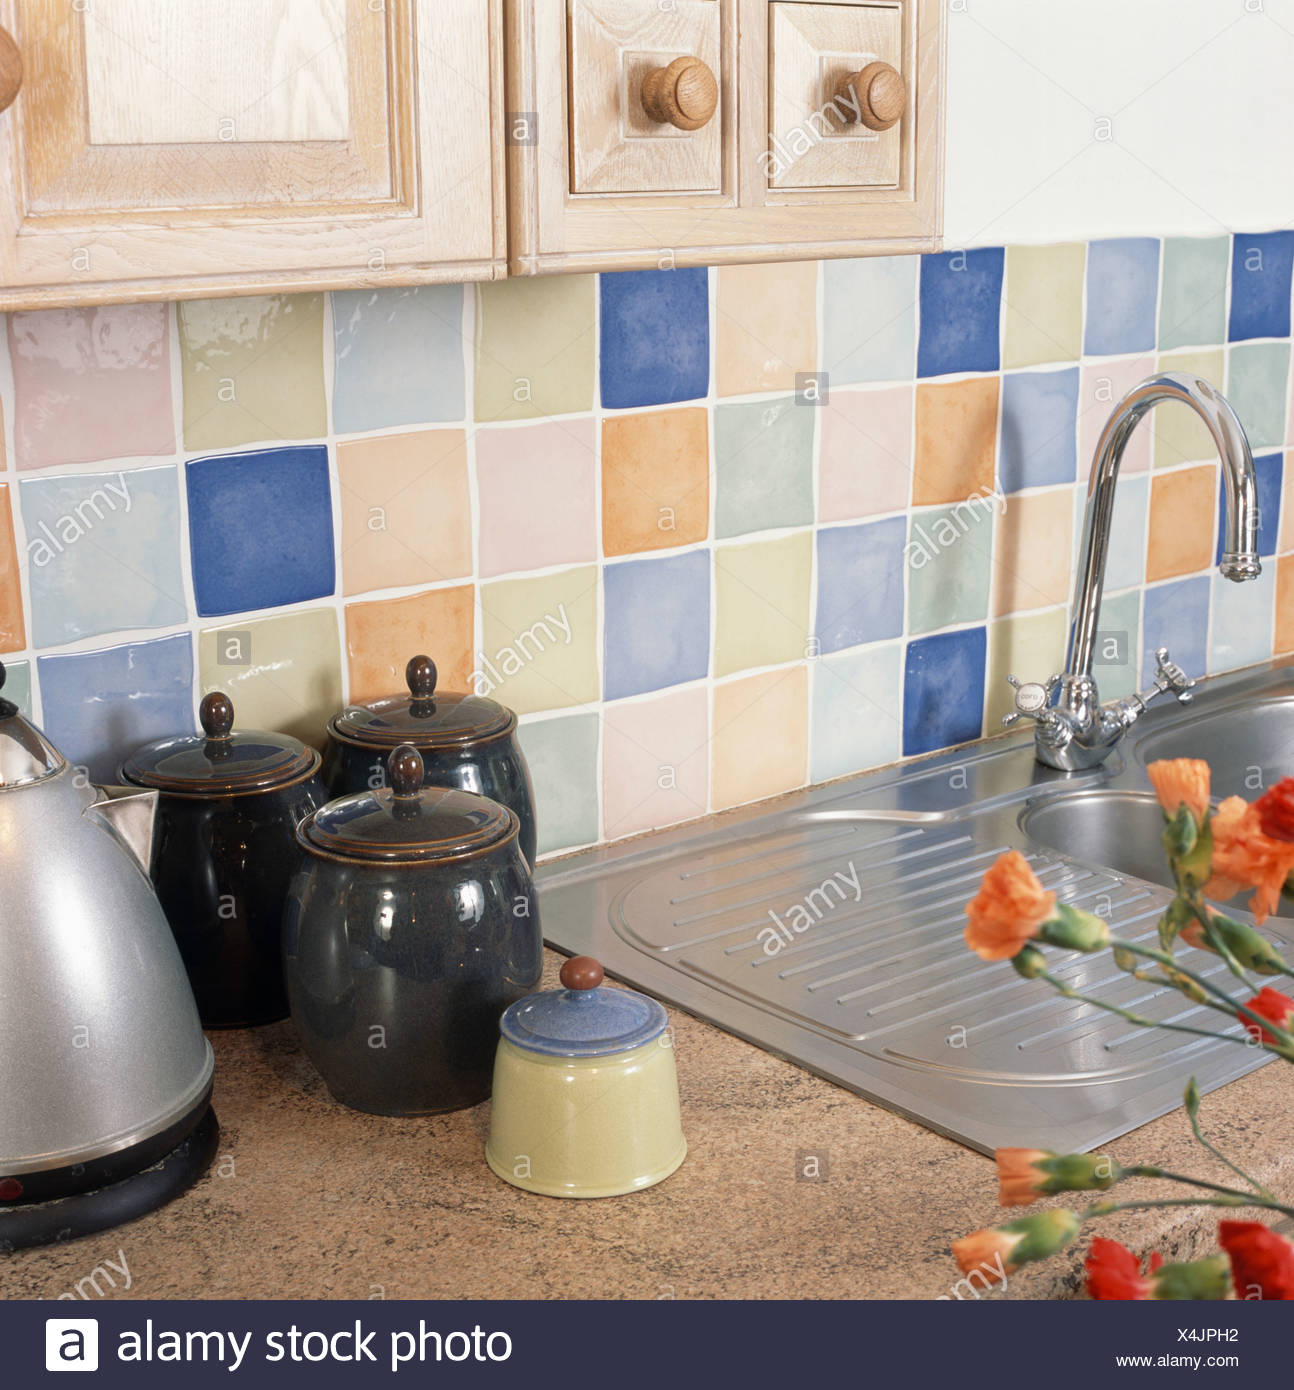 Kitchen Details Tiling Stockfotos & Kitchen Details Tiling Bilder ...